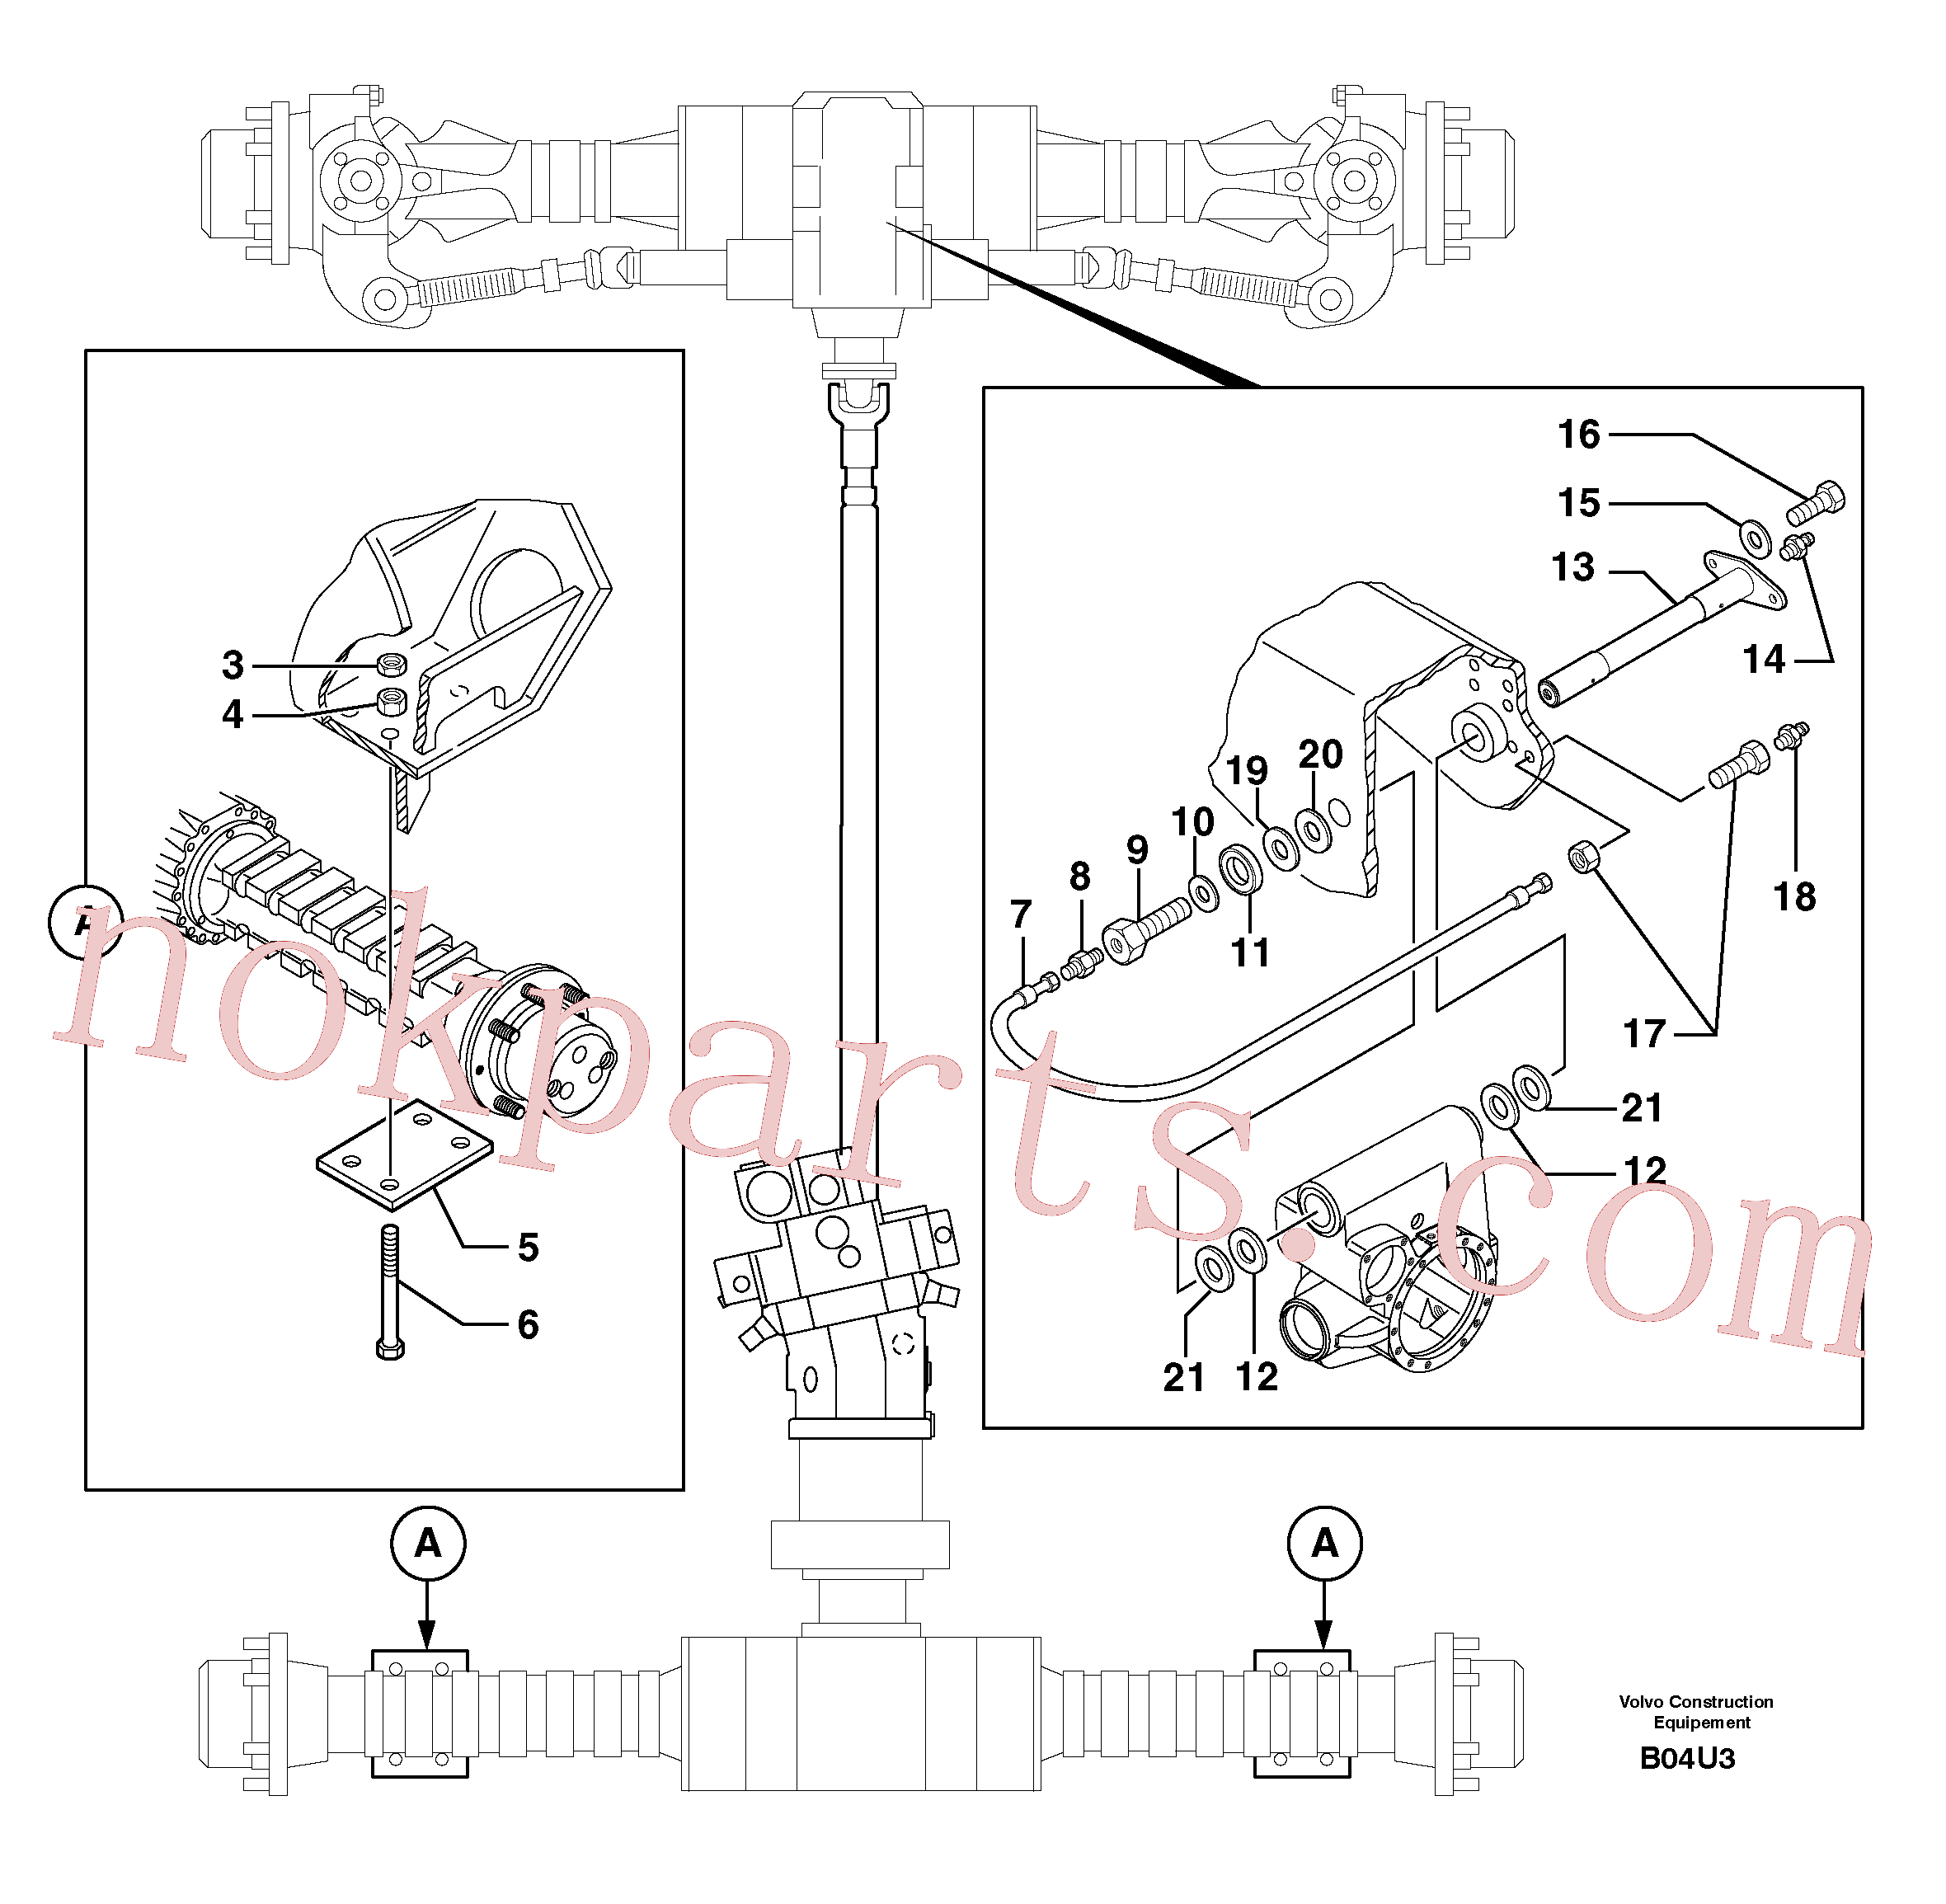 VOE11802456 for Volvo Axle cradles and mountings(B04U3 assembly)